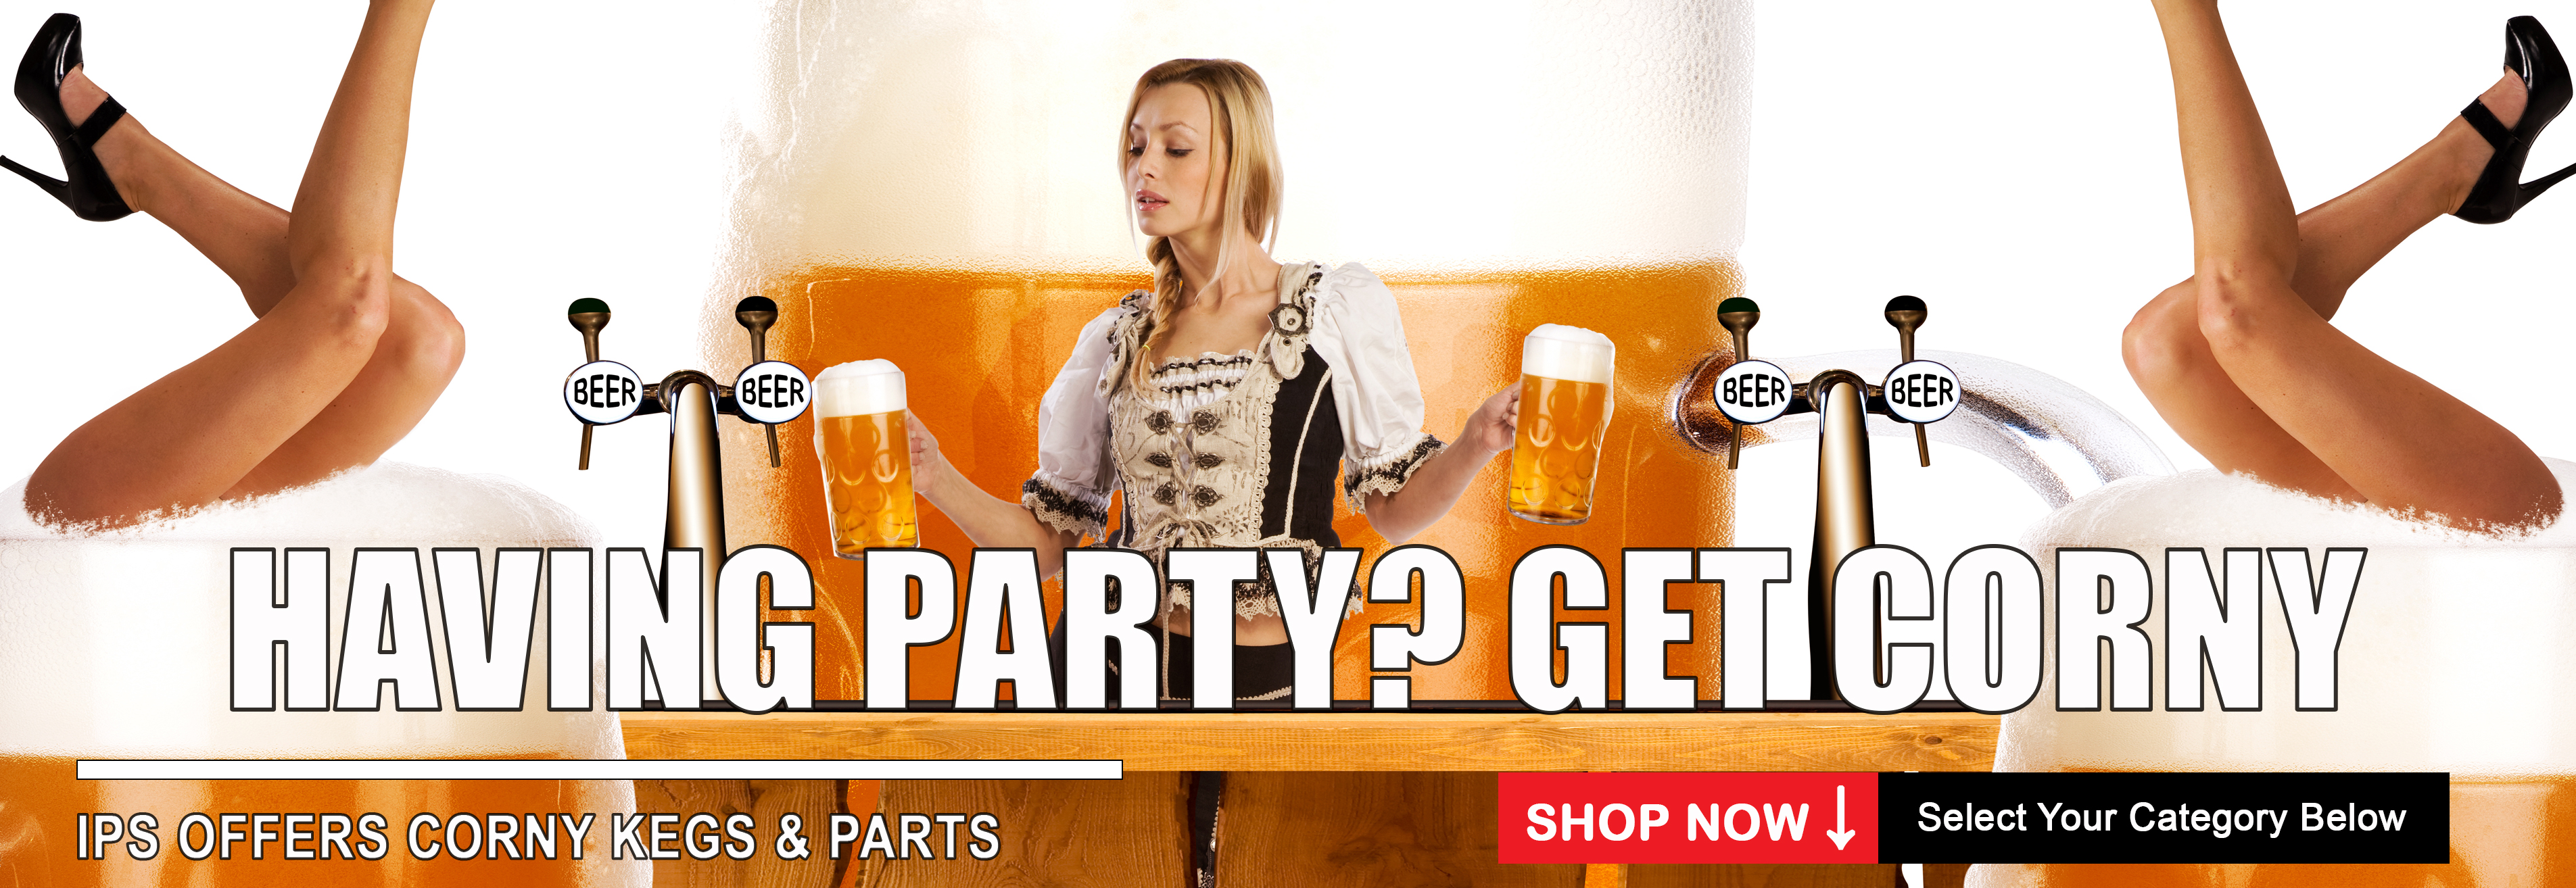 Ips Offers Corny Kegs & Parts